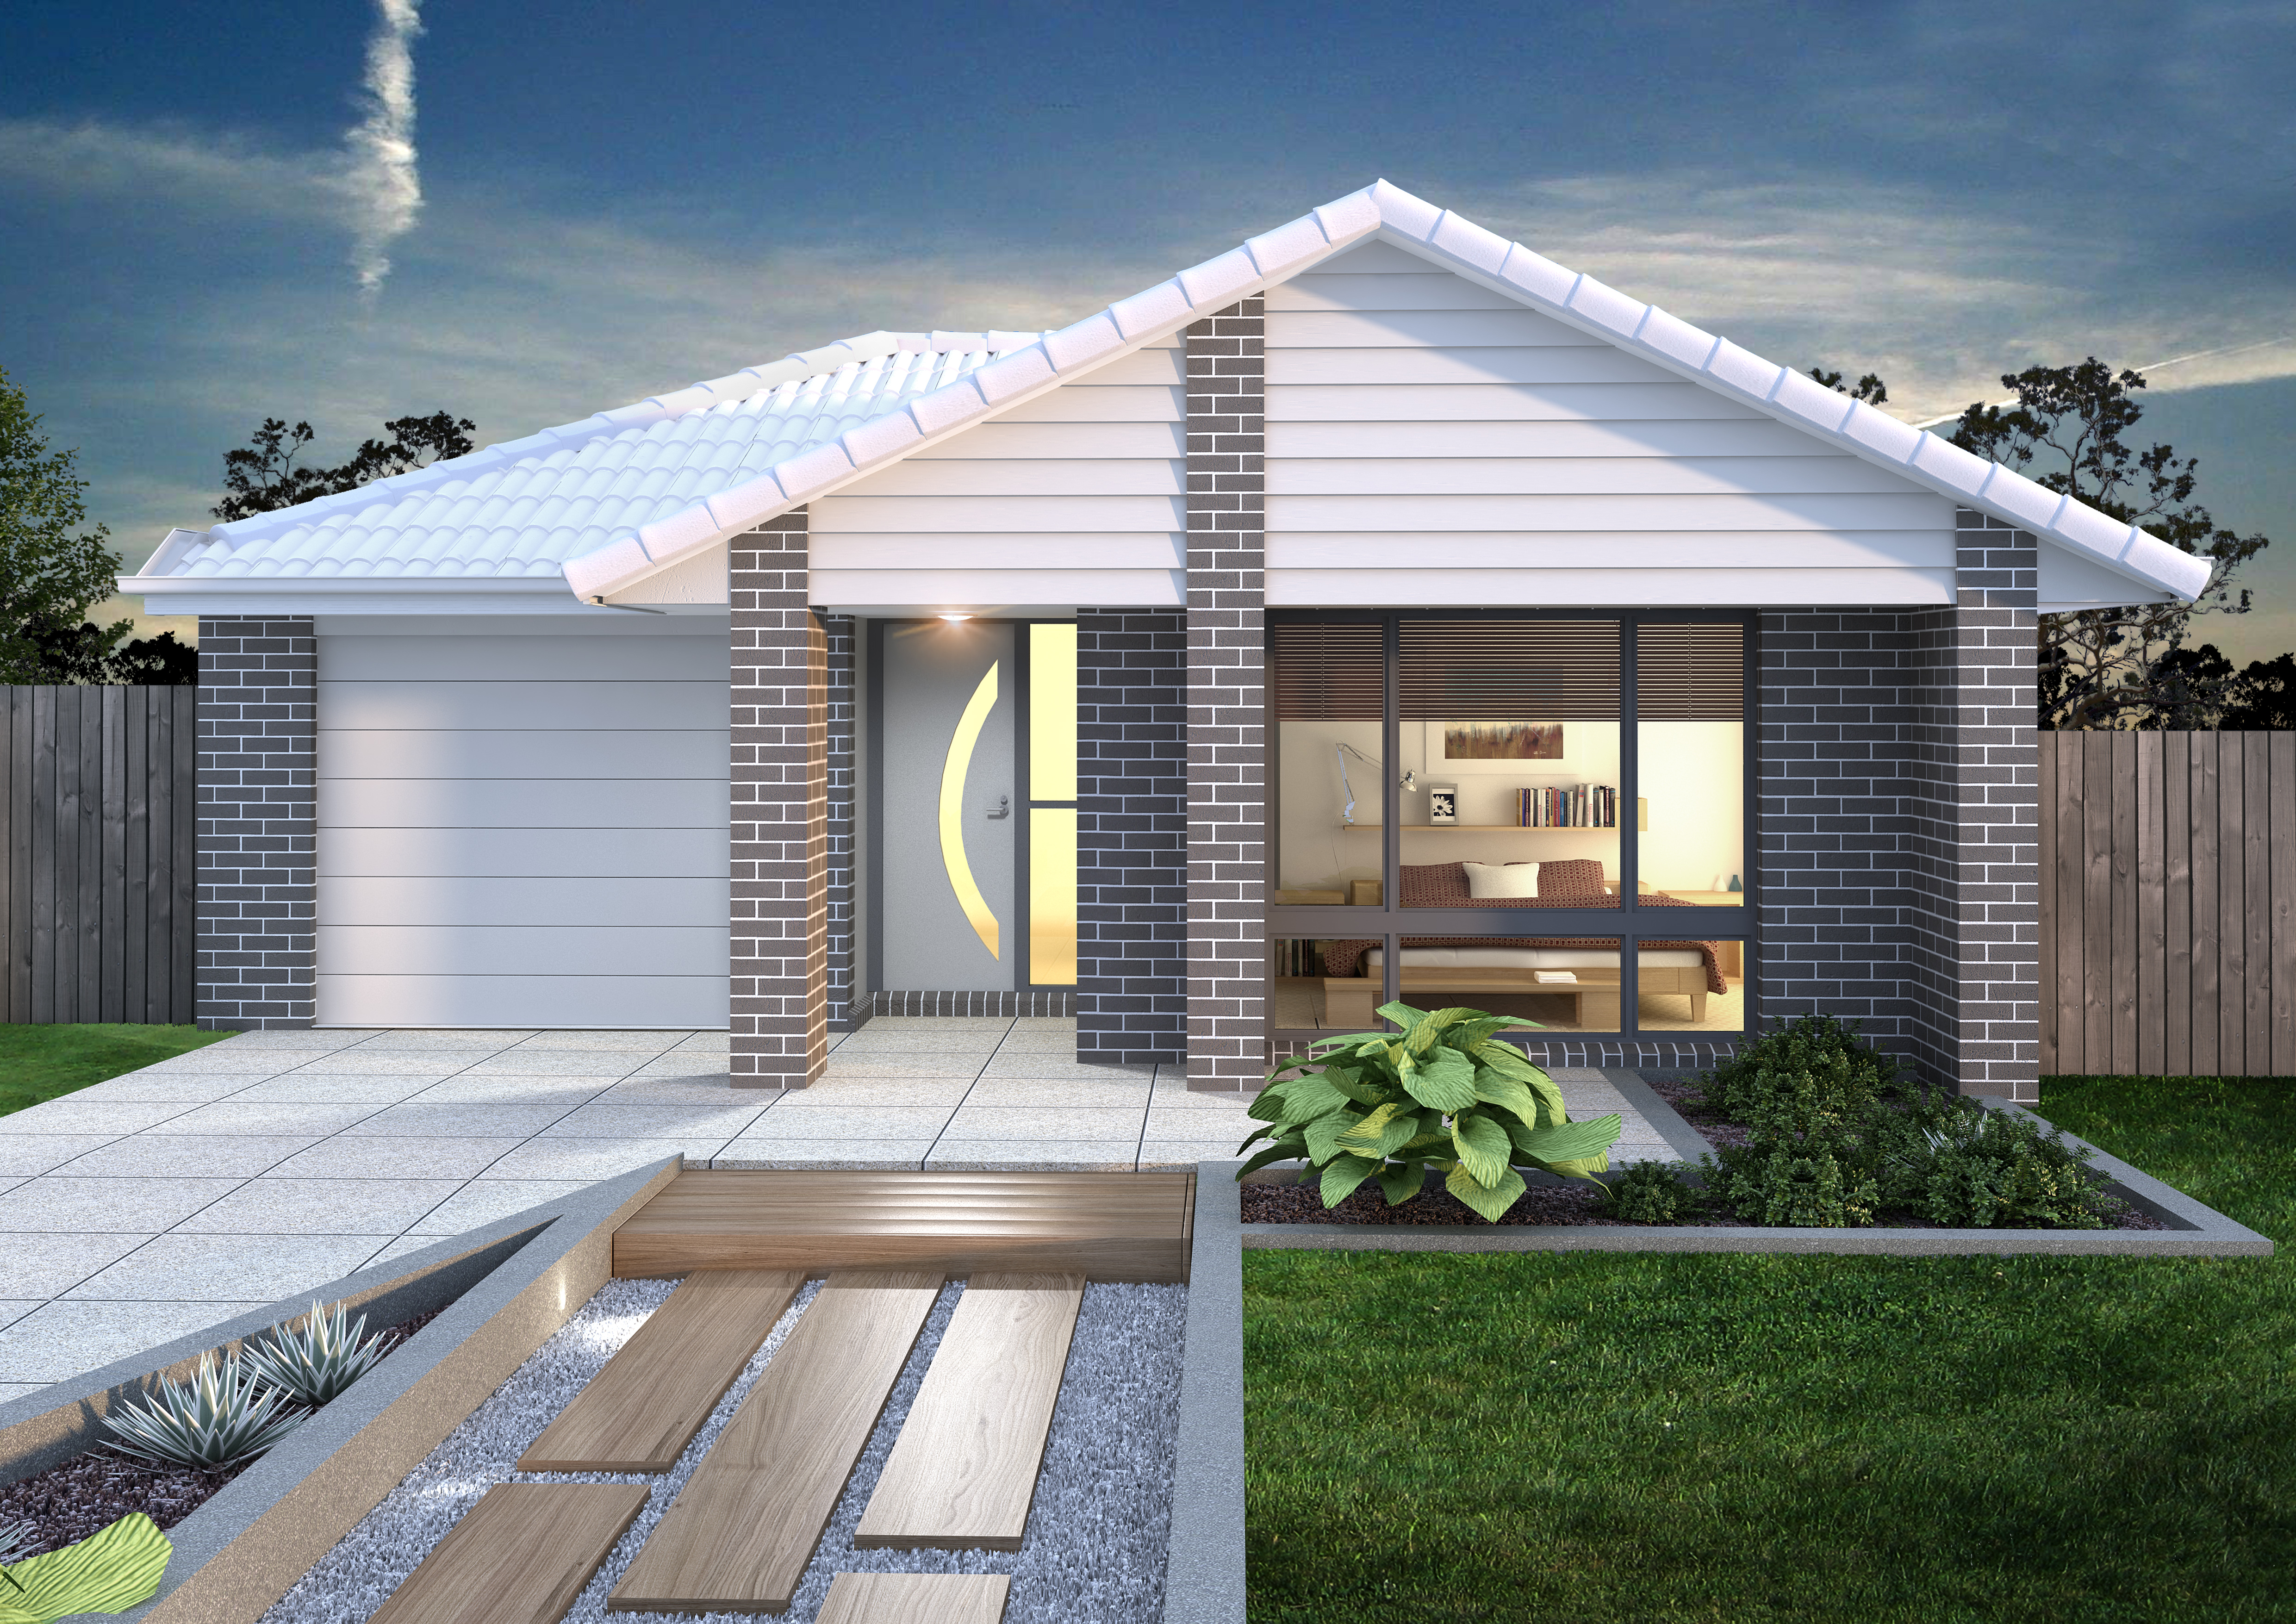 New home design sabrina perry homes nsw qld for New home designs qld